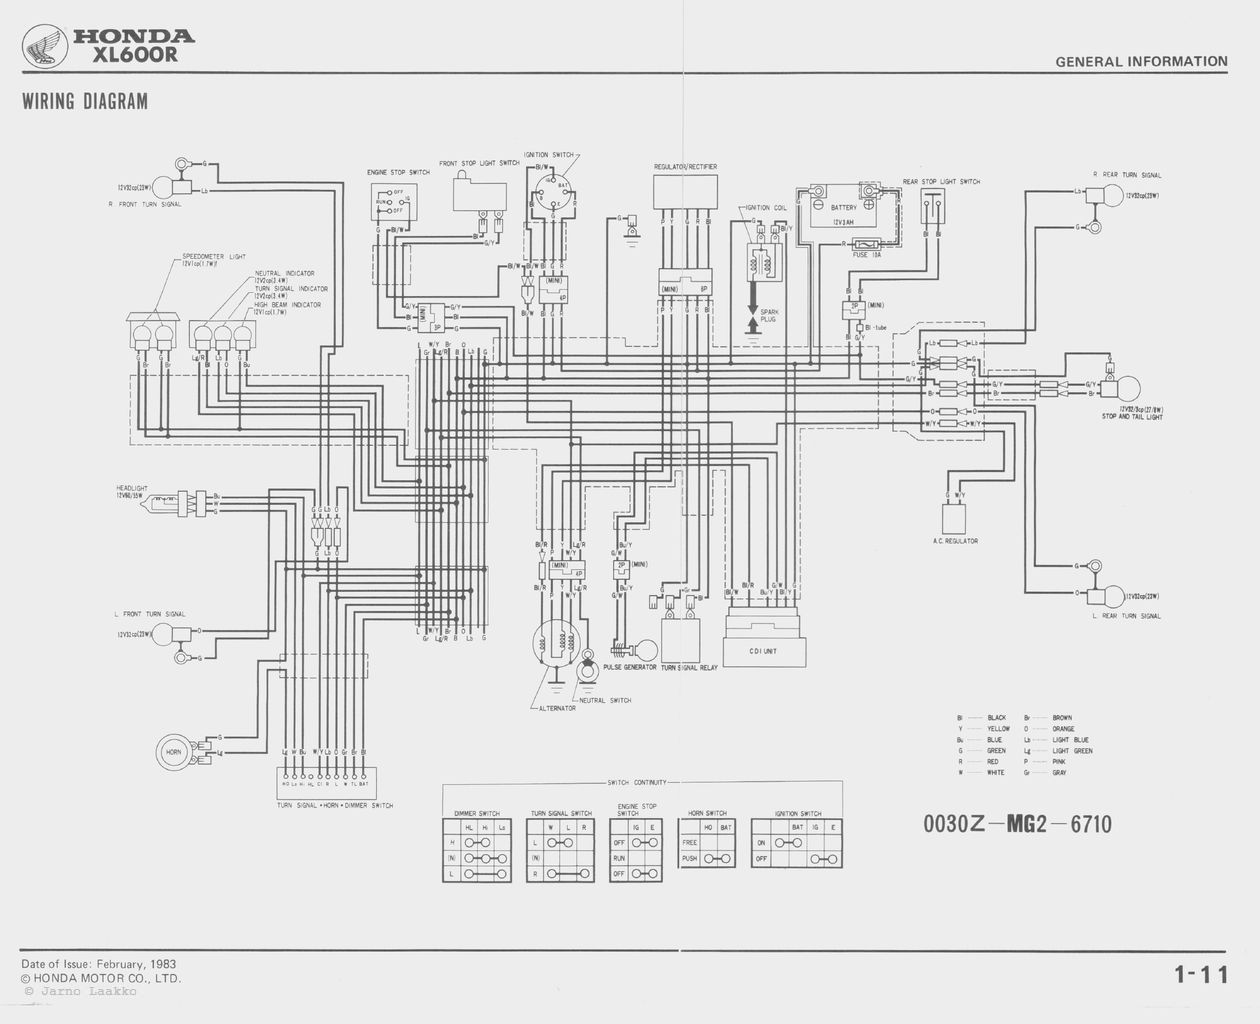 1983 Honda Shadow Wiring Diagram http://www.advrider.com/forums/showthread.php?t=733647